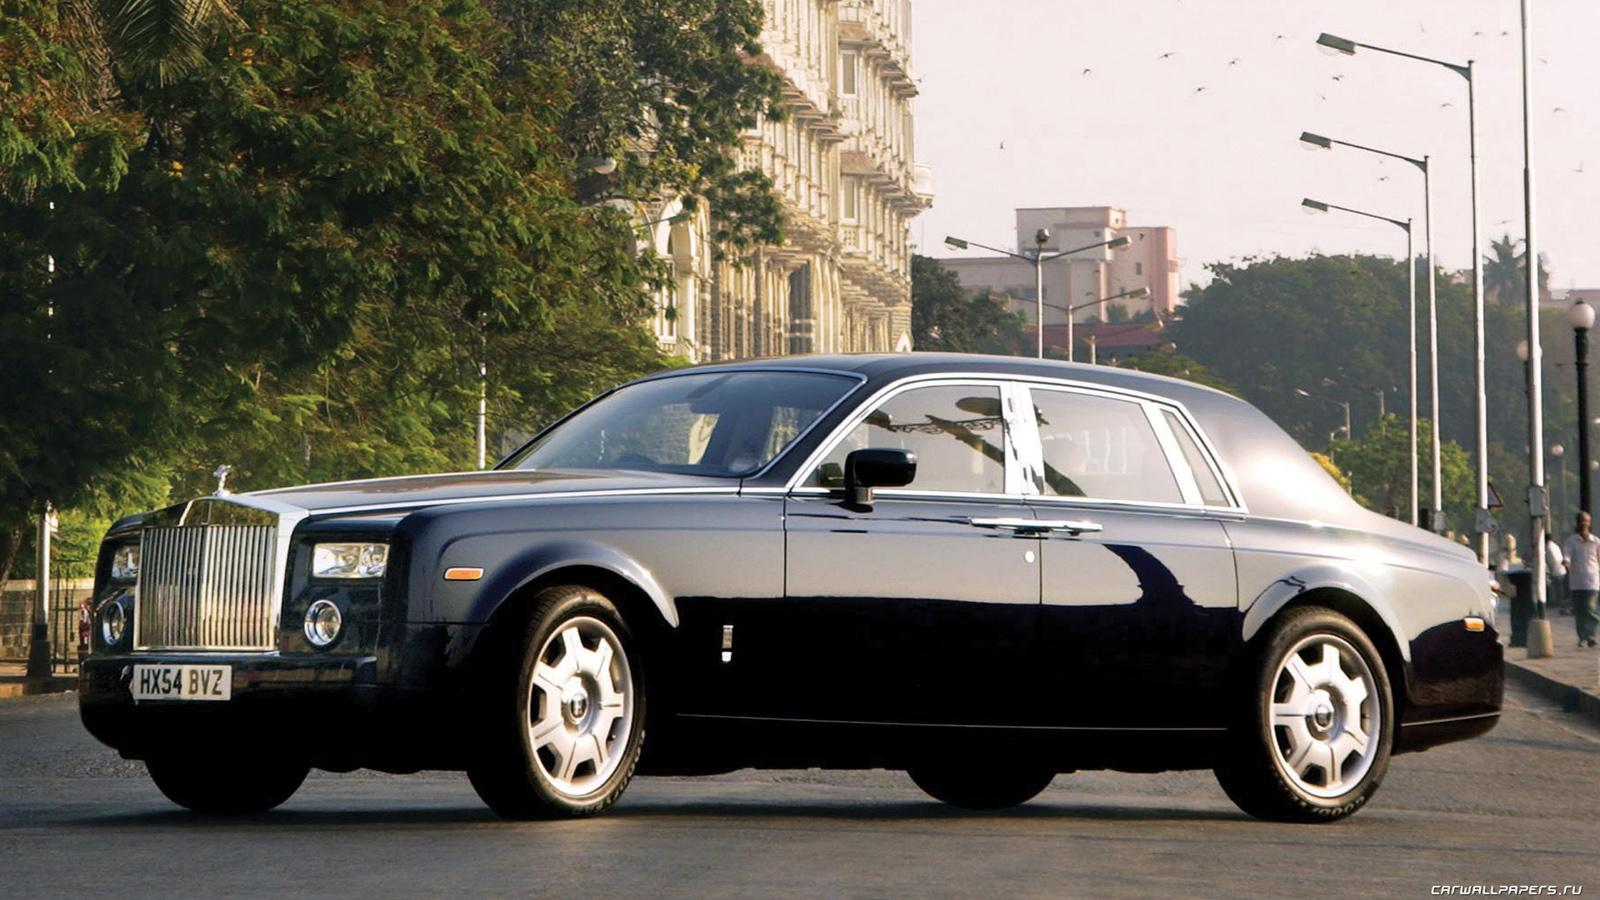 2005 rolls royce phantom information and photos zombiedrive. Black Bedroom Furniture Sets. Home Design Ideas